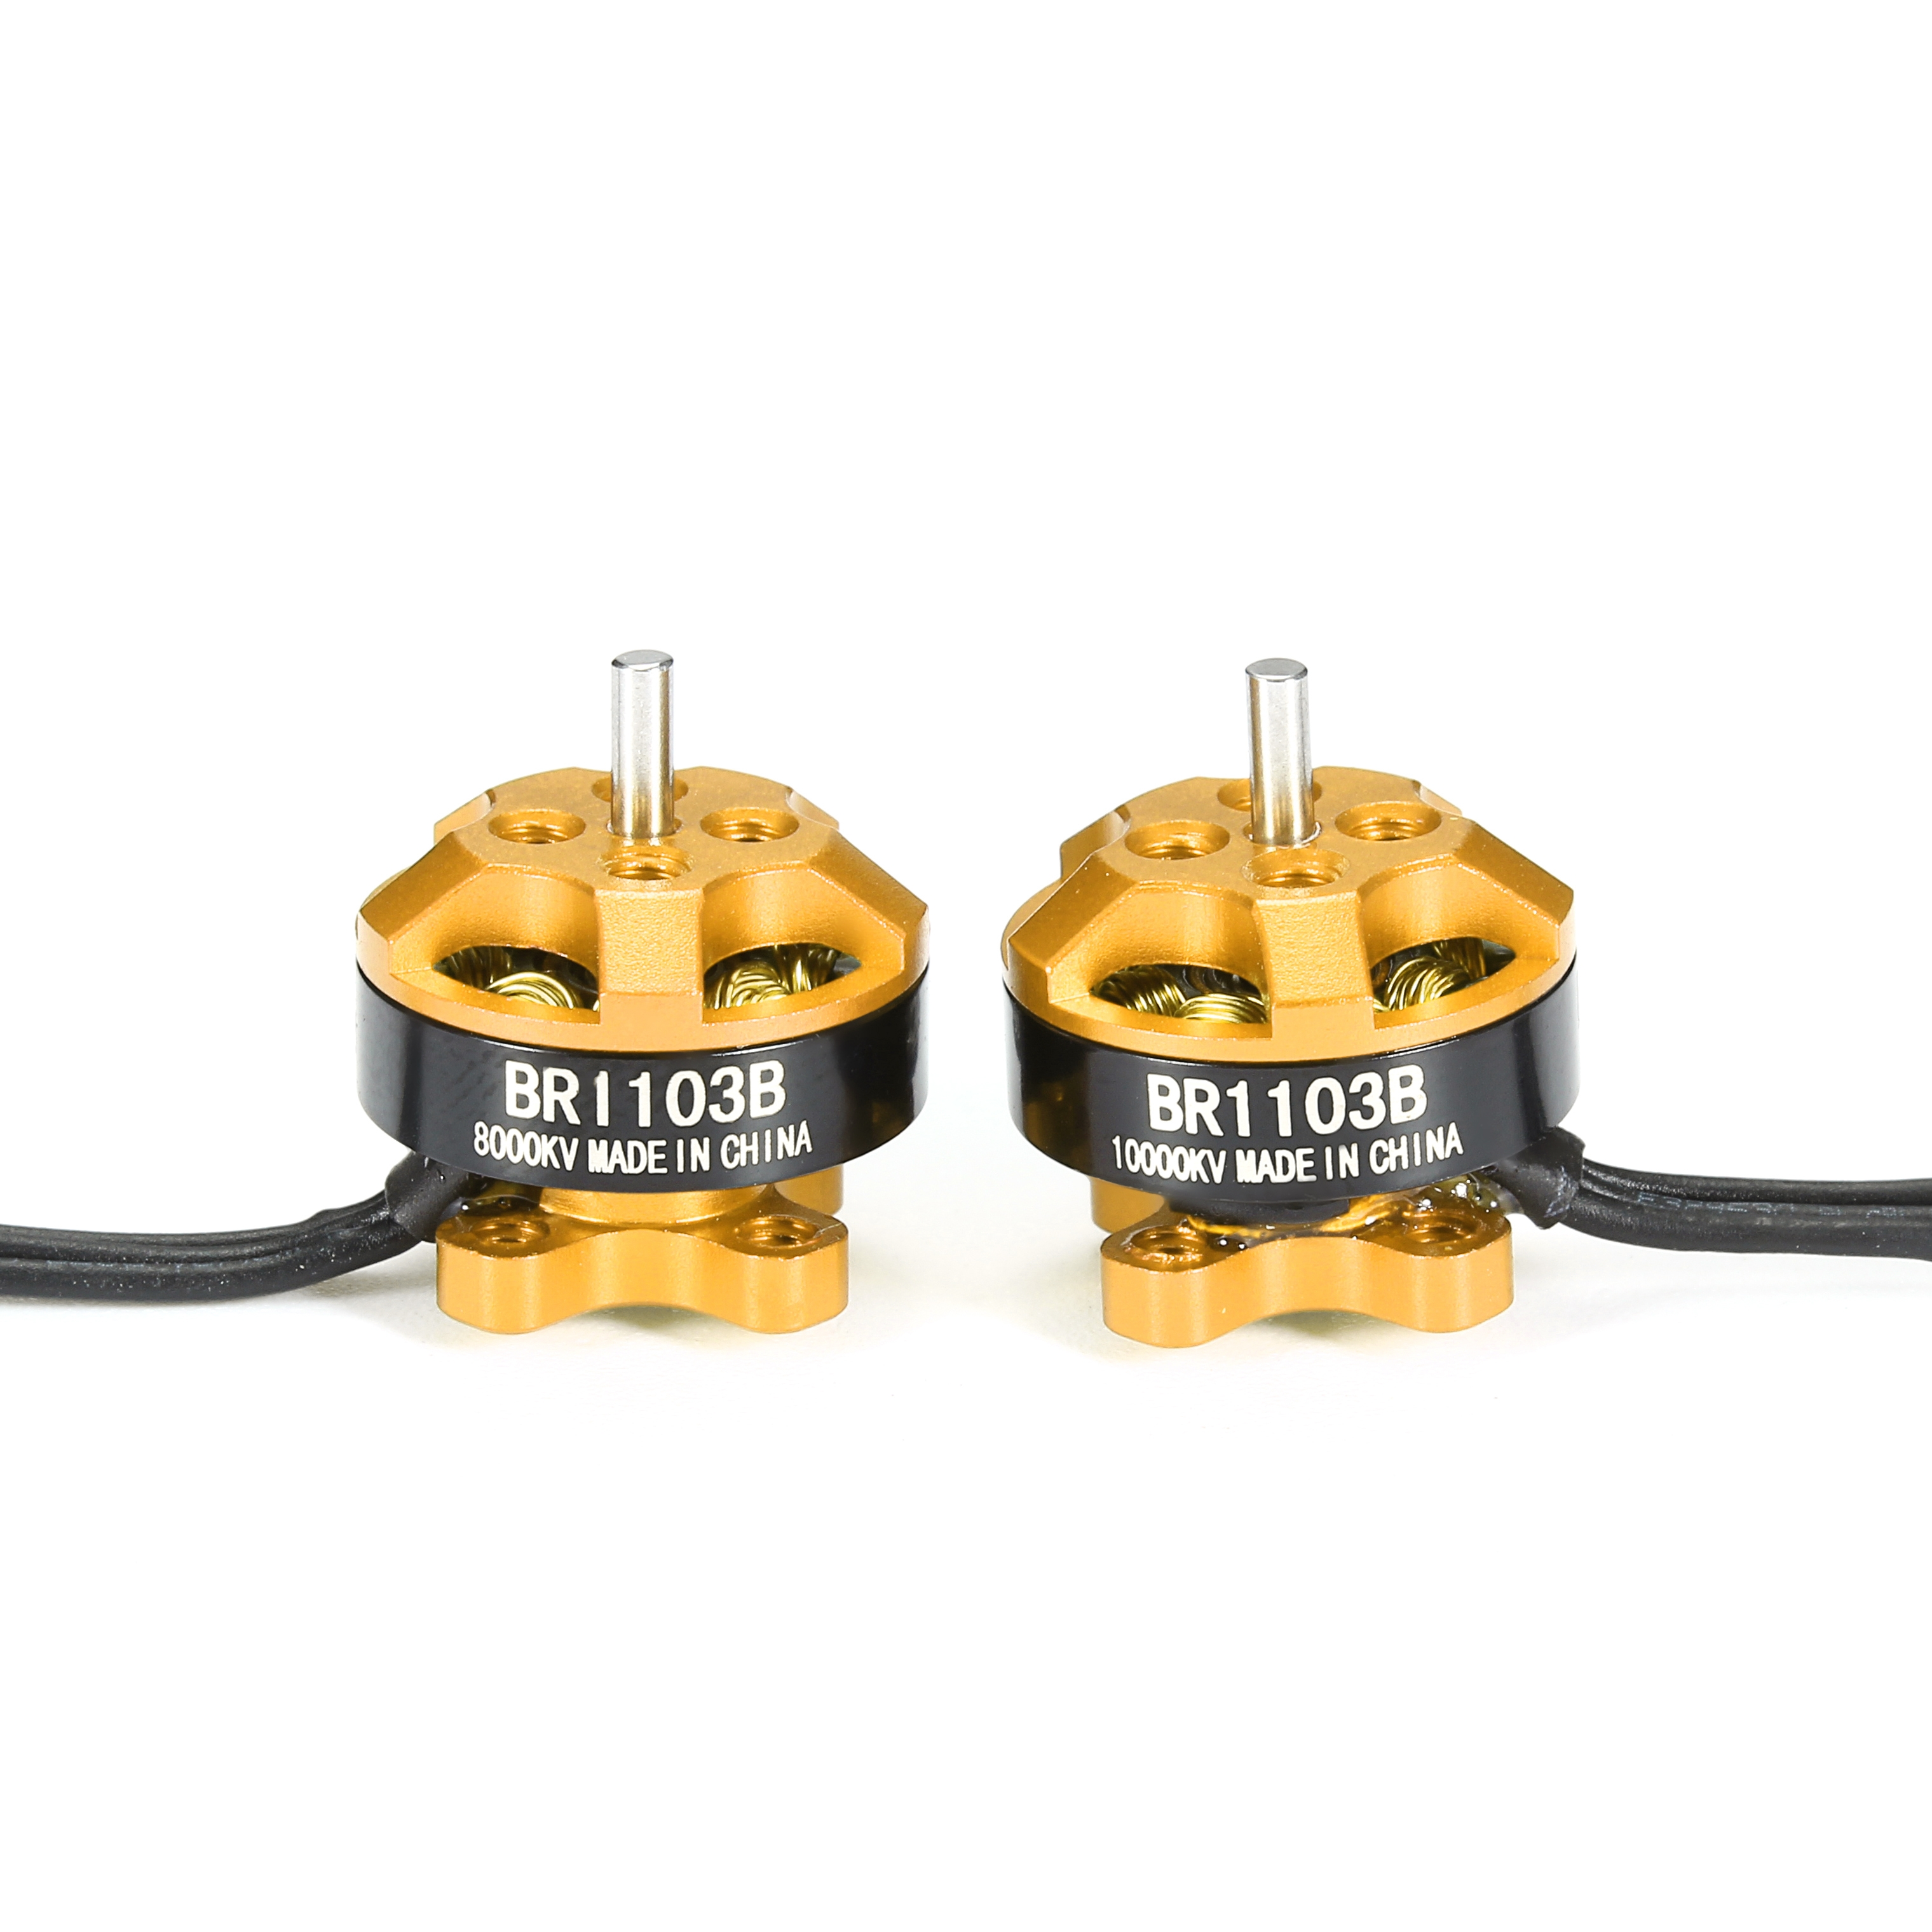 Racerstar Racing Edition 1103 BR1103B 8000KV 10000KV 1-3S Brushless Motor Gold For 50 80 100 Frame